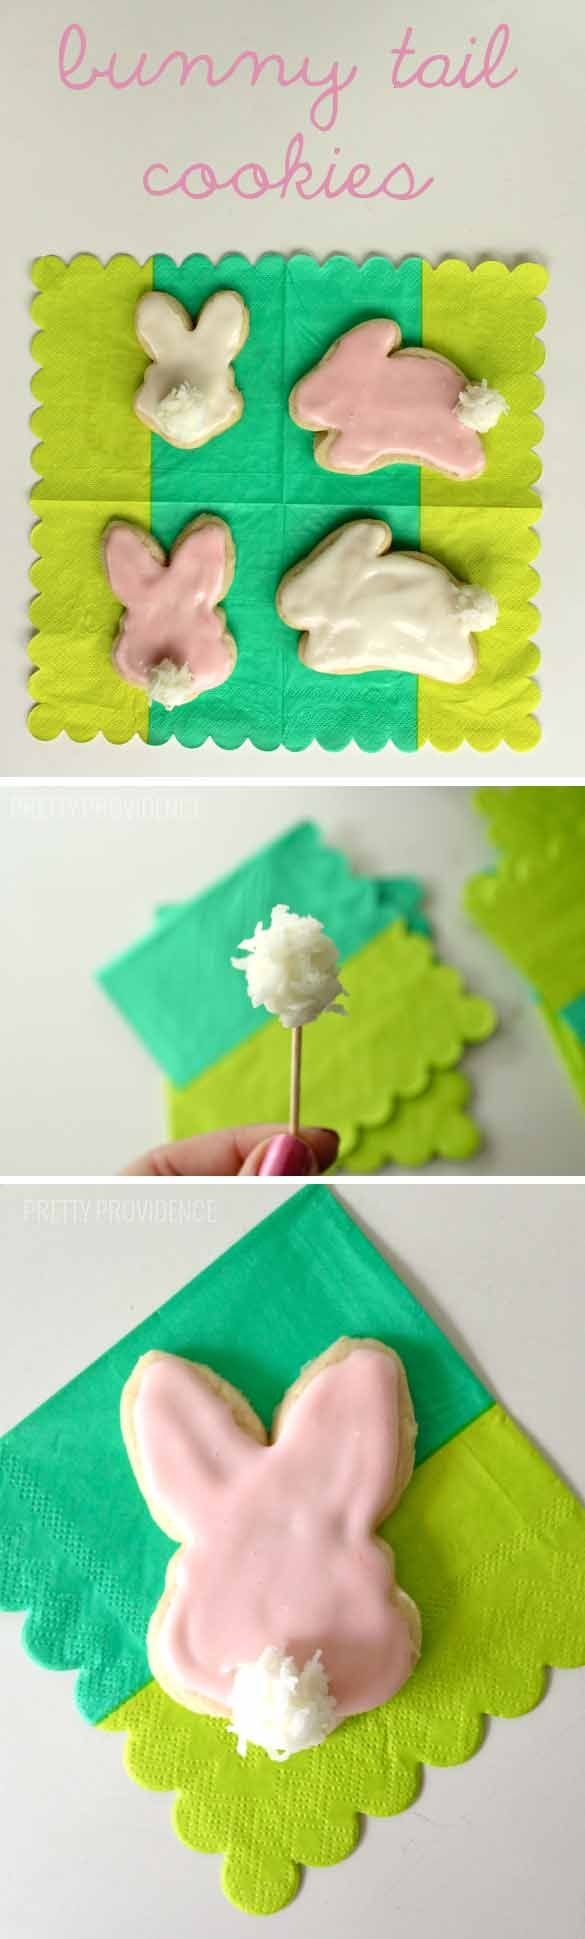 How adorable are these DIY bunny tail cookies? I made them last year for an Easter Party and all the littles LOVED them!